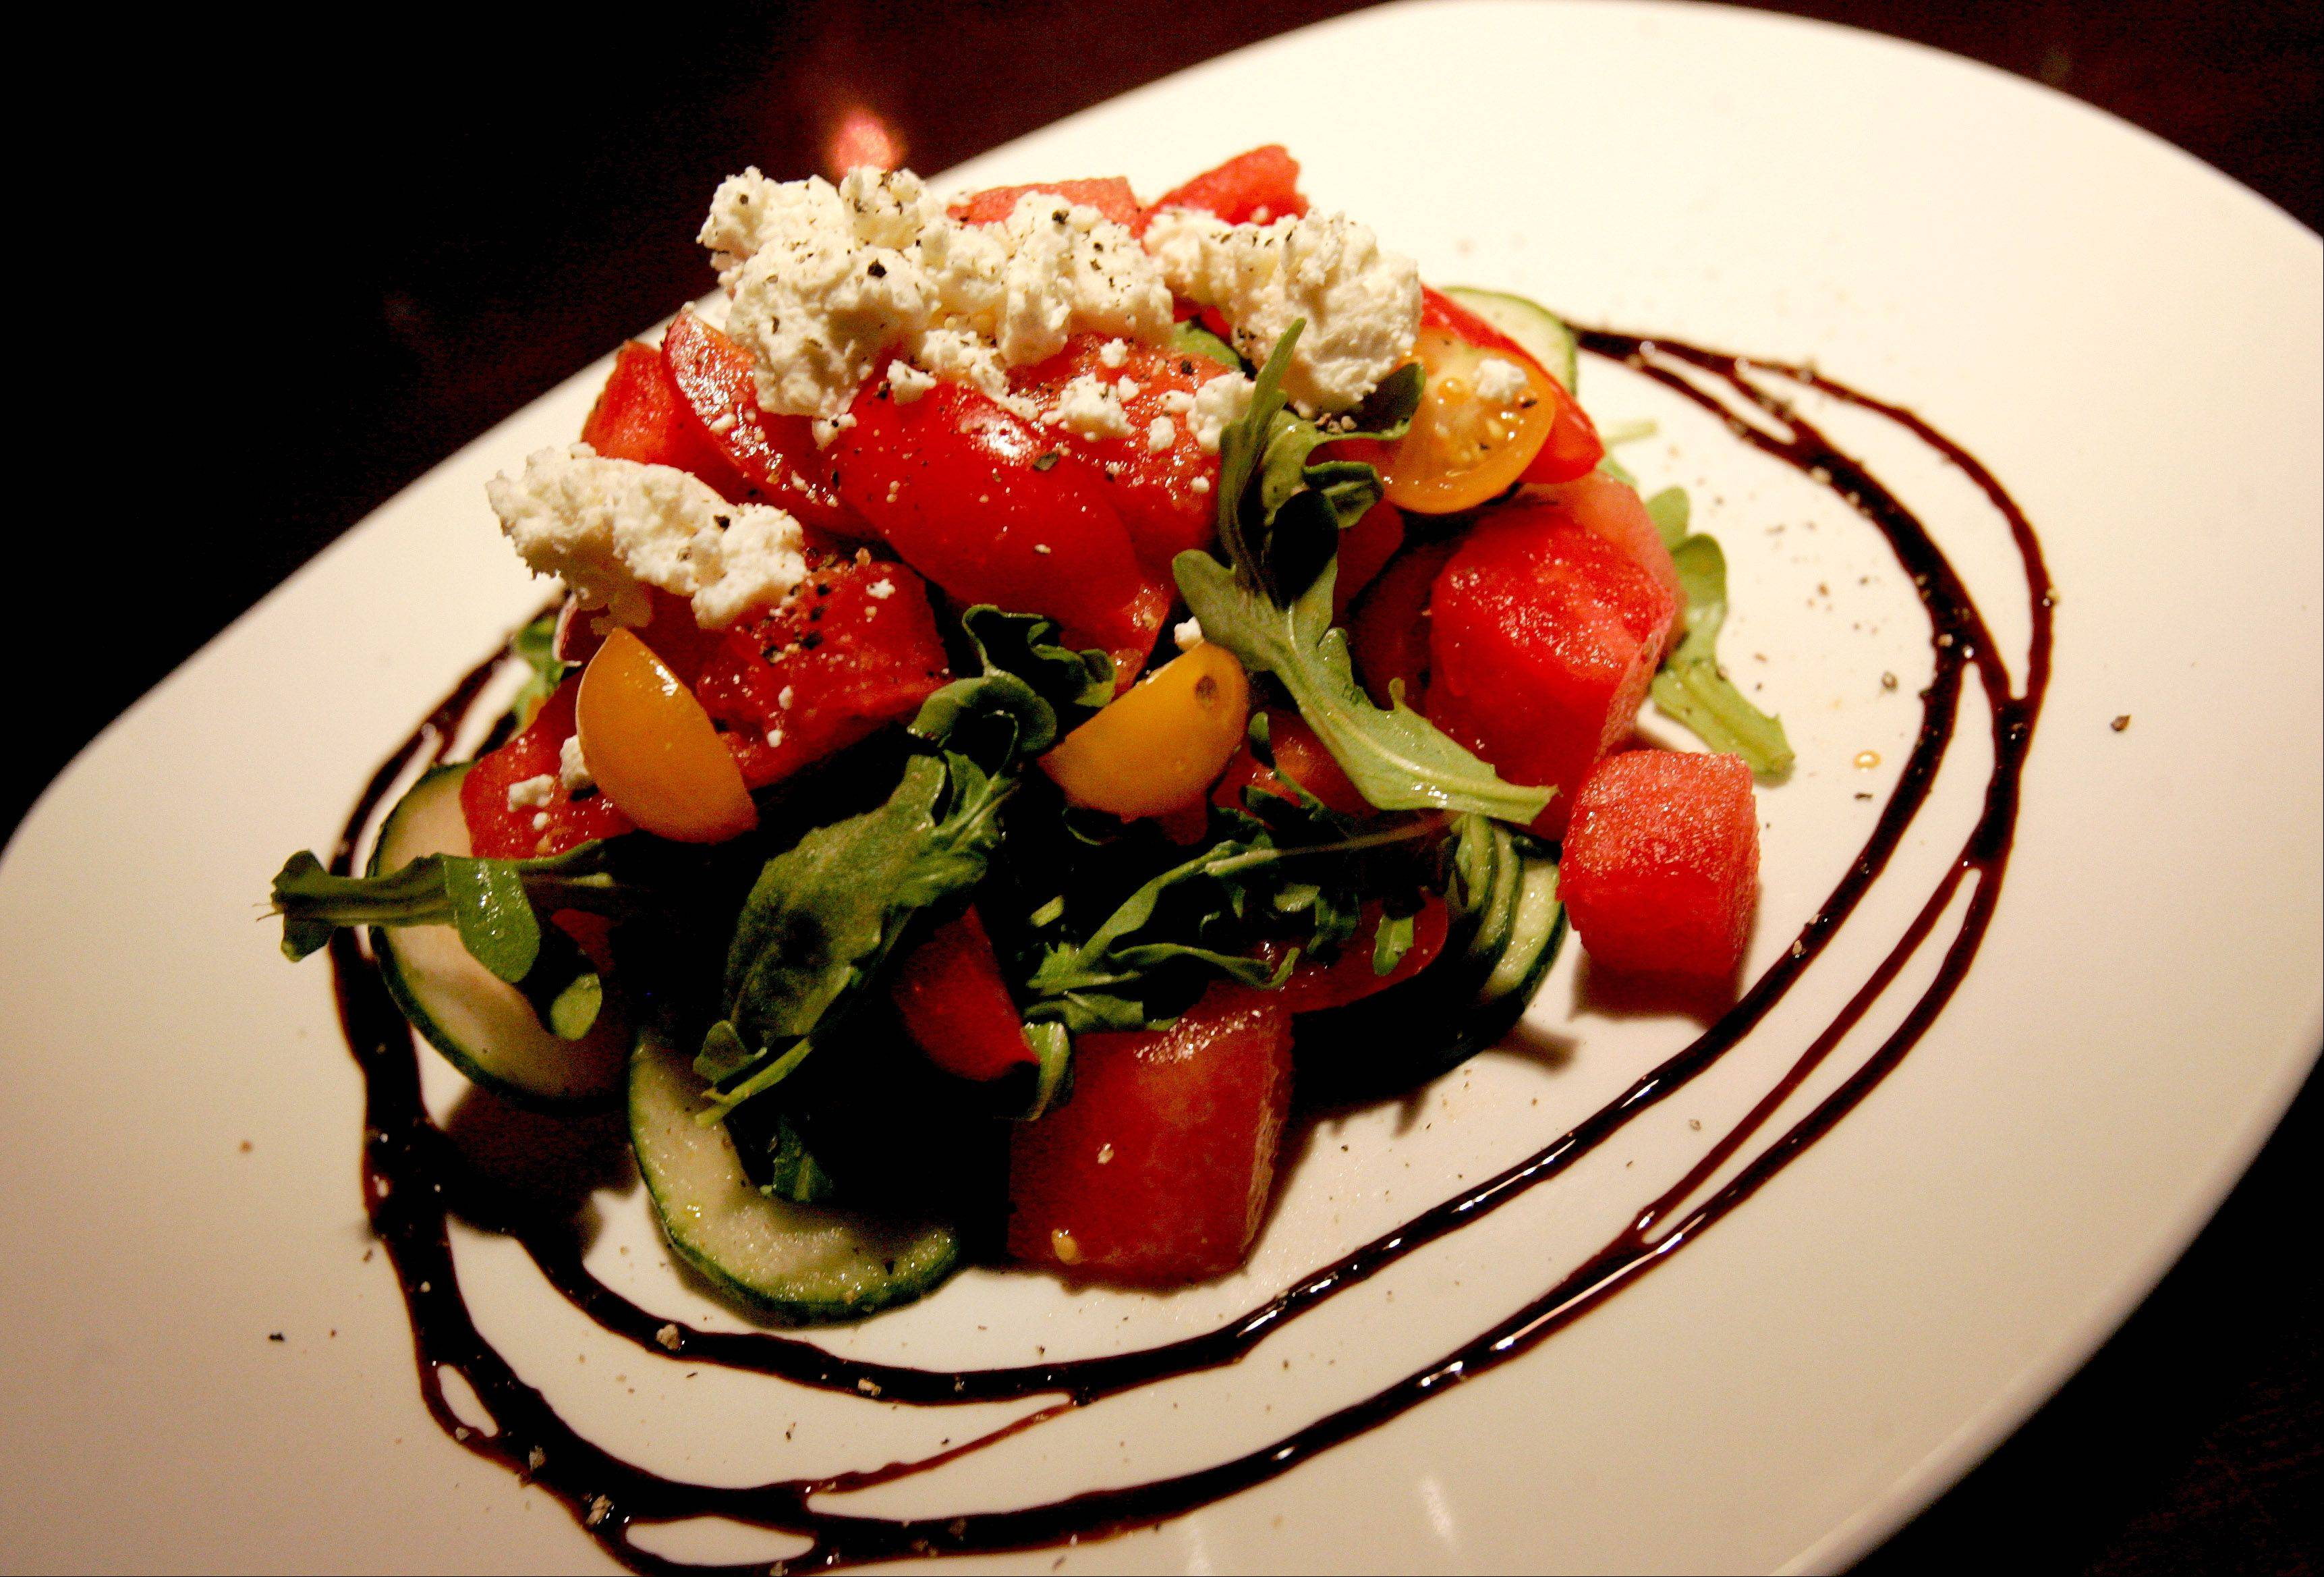 Tomatoes and watermelon come together in a summer salad at Flour + Wine.